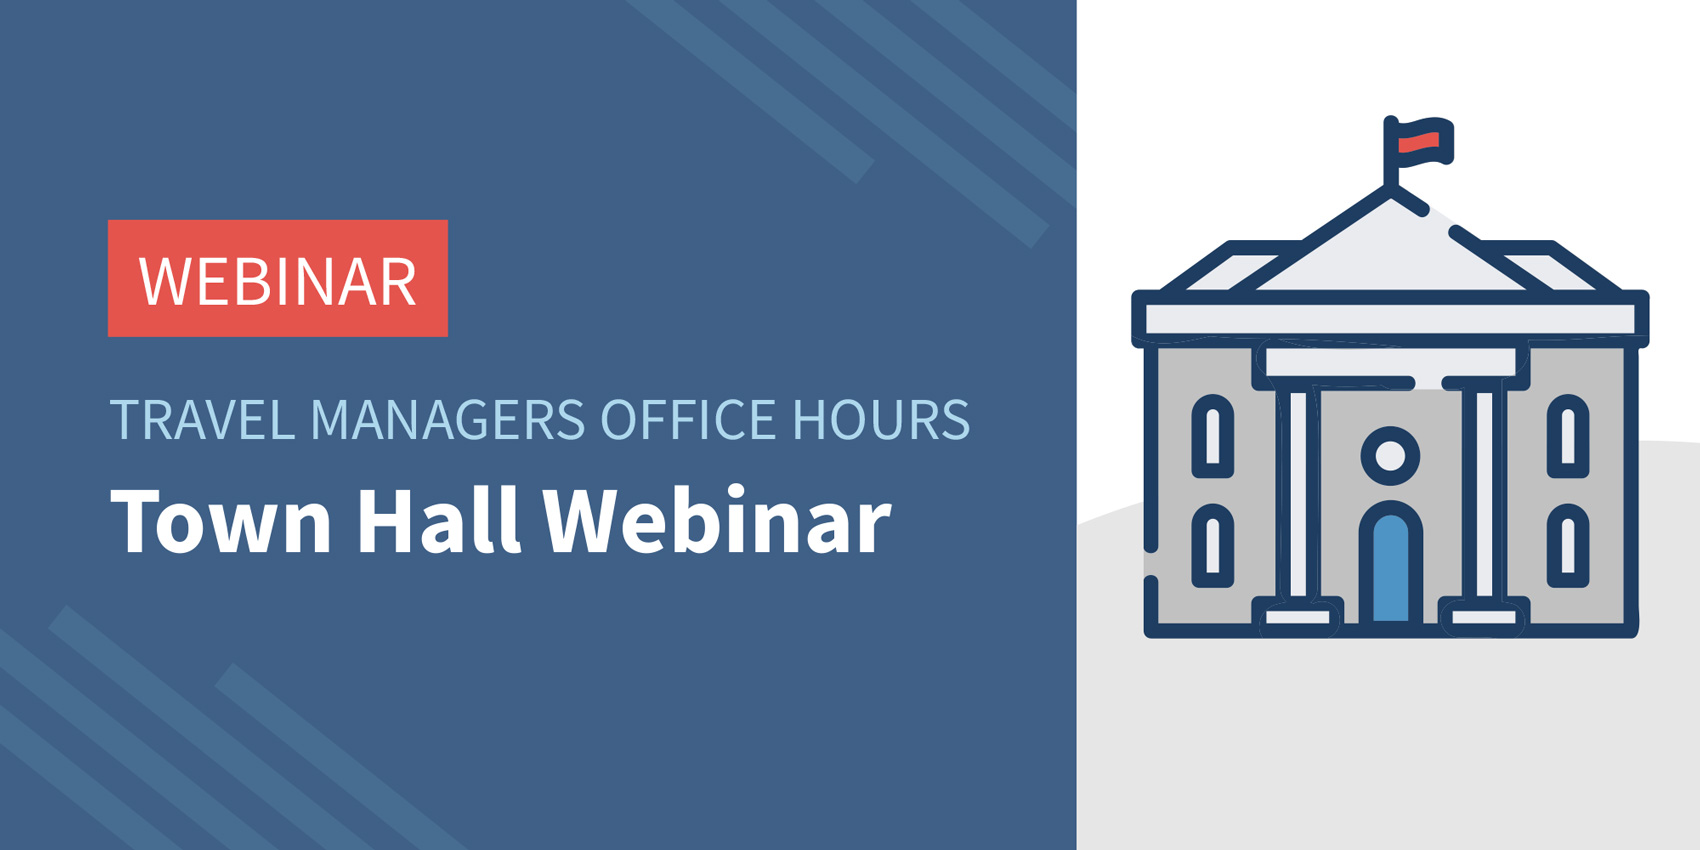 Traxo September 2020 Travel Managers Office Hours Town Hall Webinar